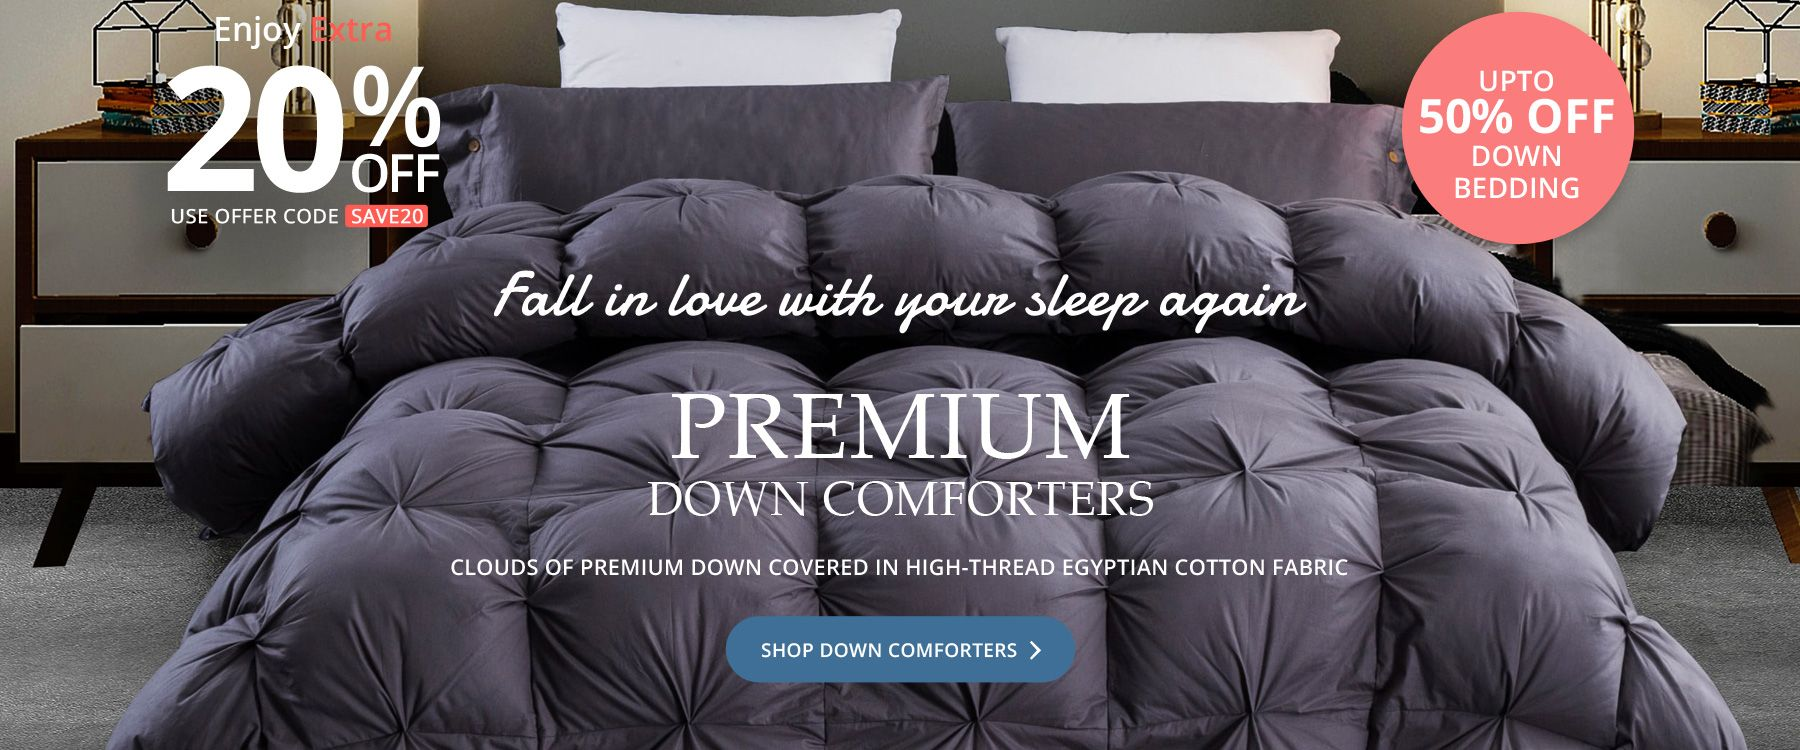 Premium Down Comforters - Clouds of Premium Down Covered In High-Thread Egyptian Cotton Fabric